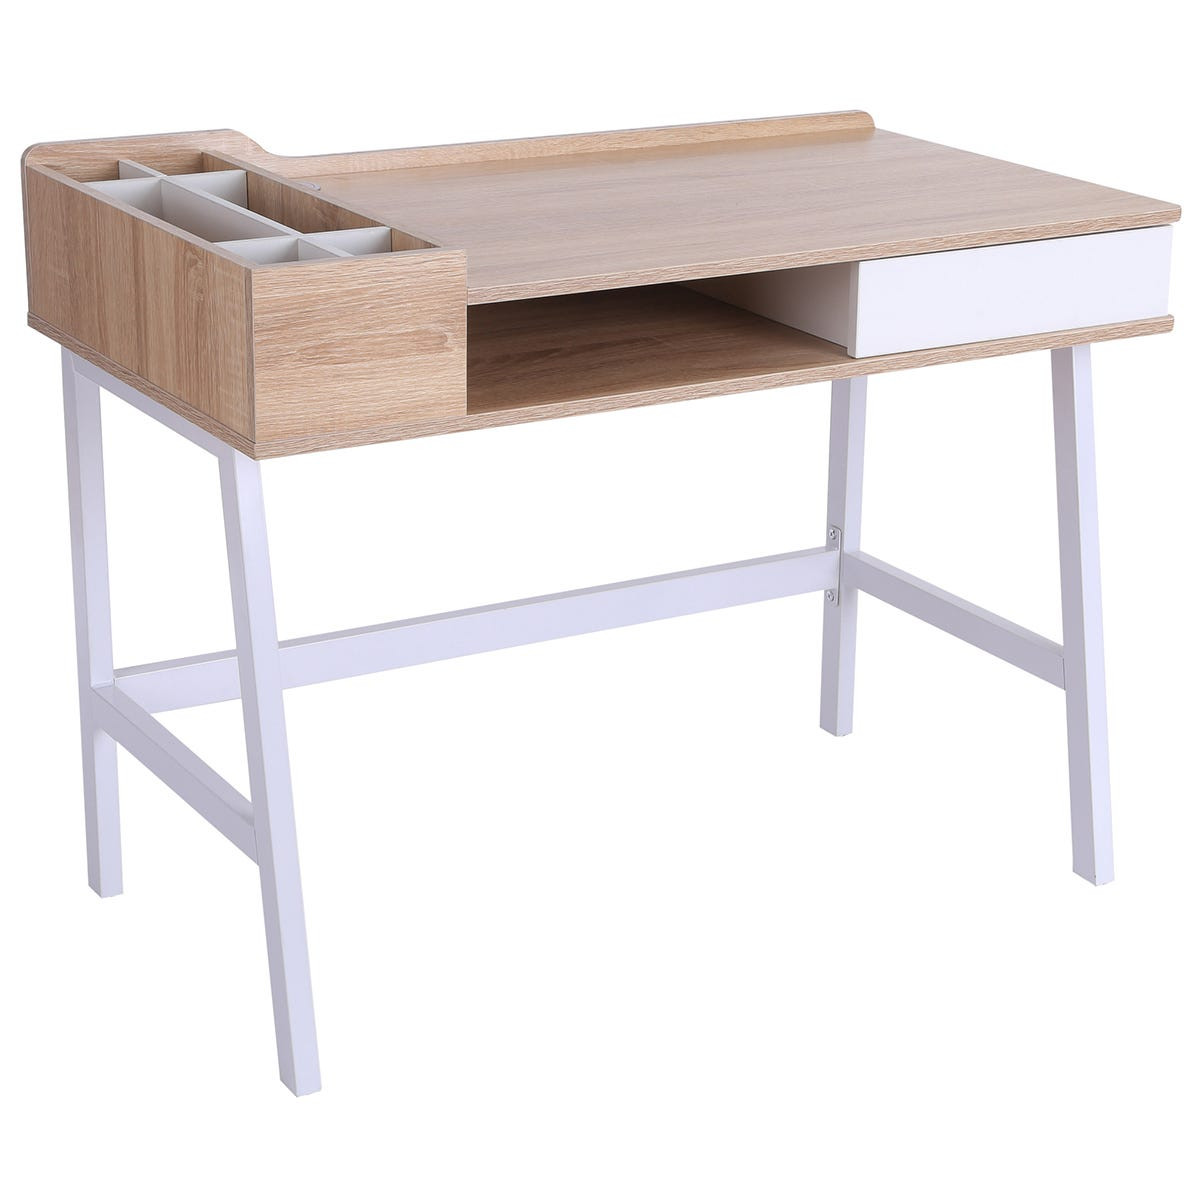 Solstice Atmos Computer Desk with Storage Unit & Metal Frame - White/Oak